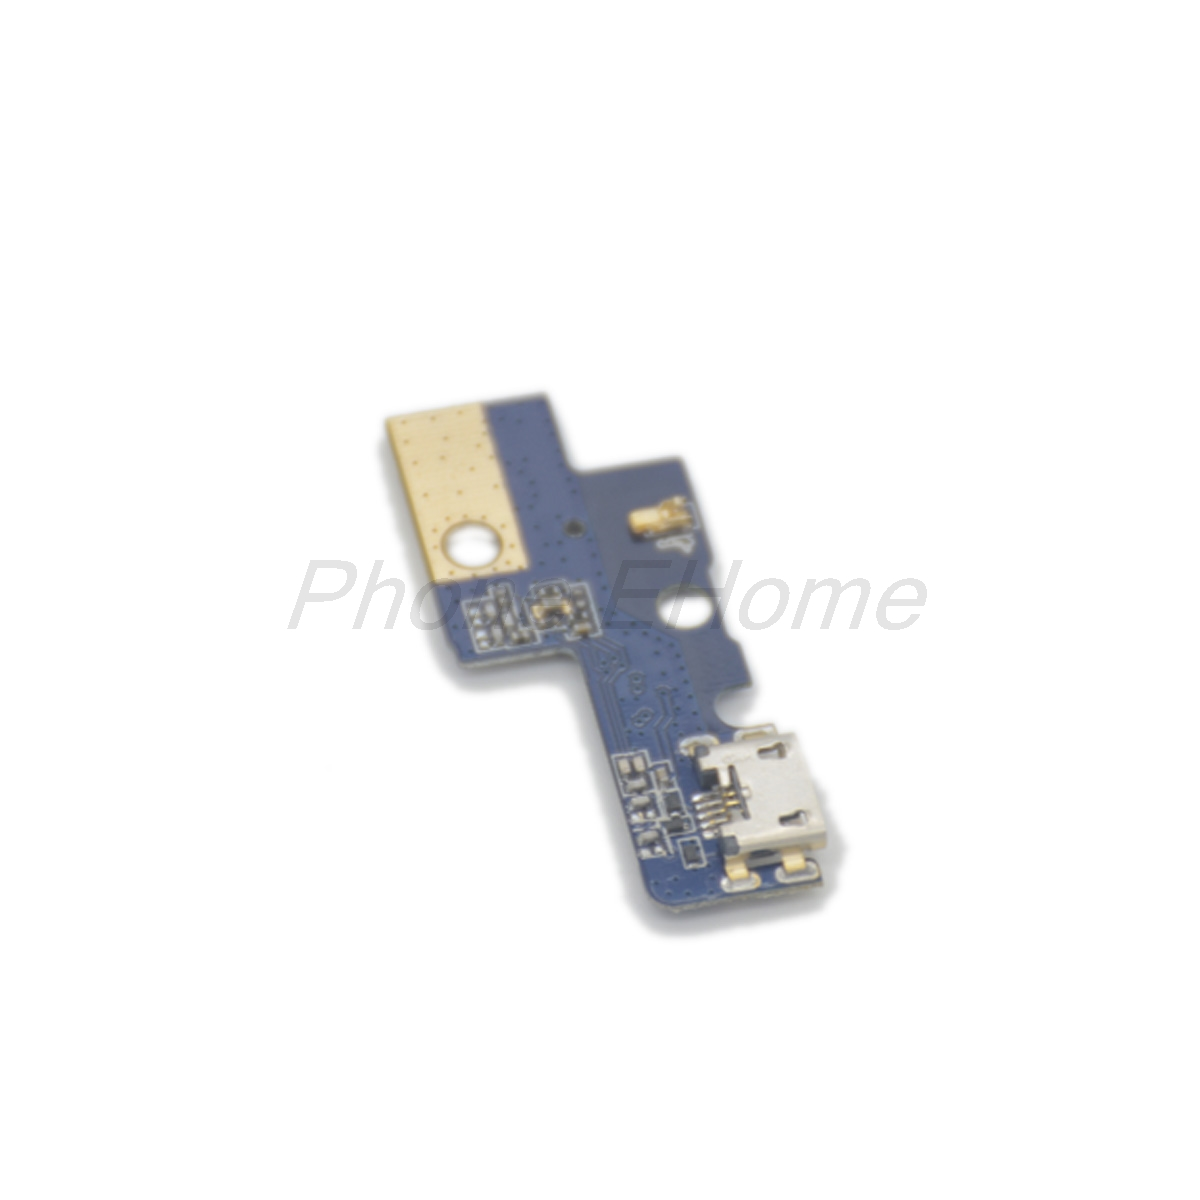 Original Bluboo Maya USB Board 100% New usb plug charge board repair replacement Accessory for Mobile Phone + In shock